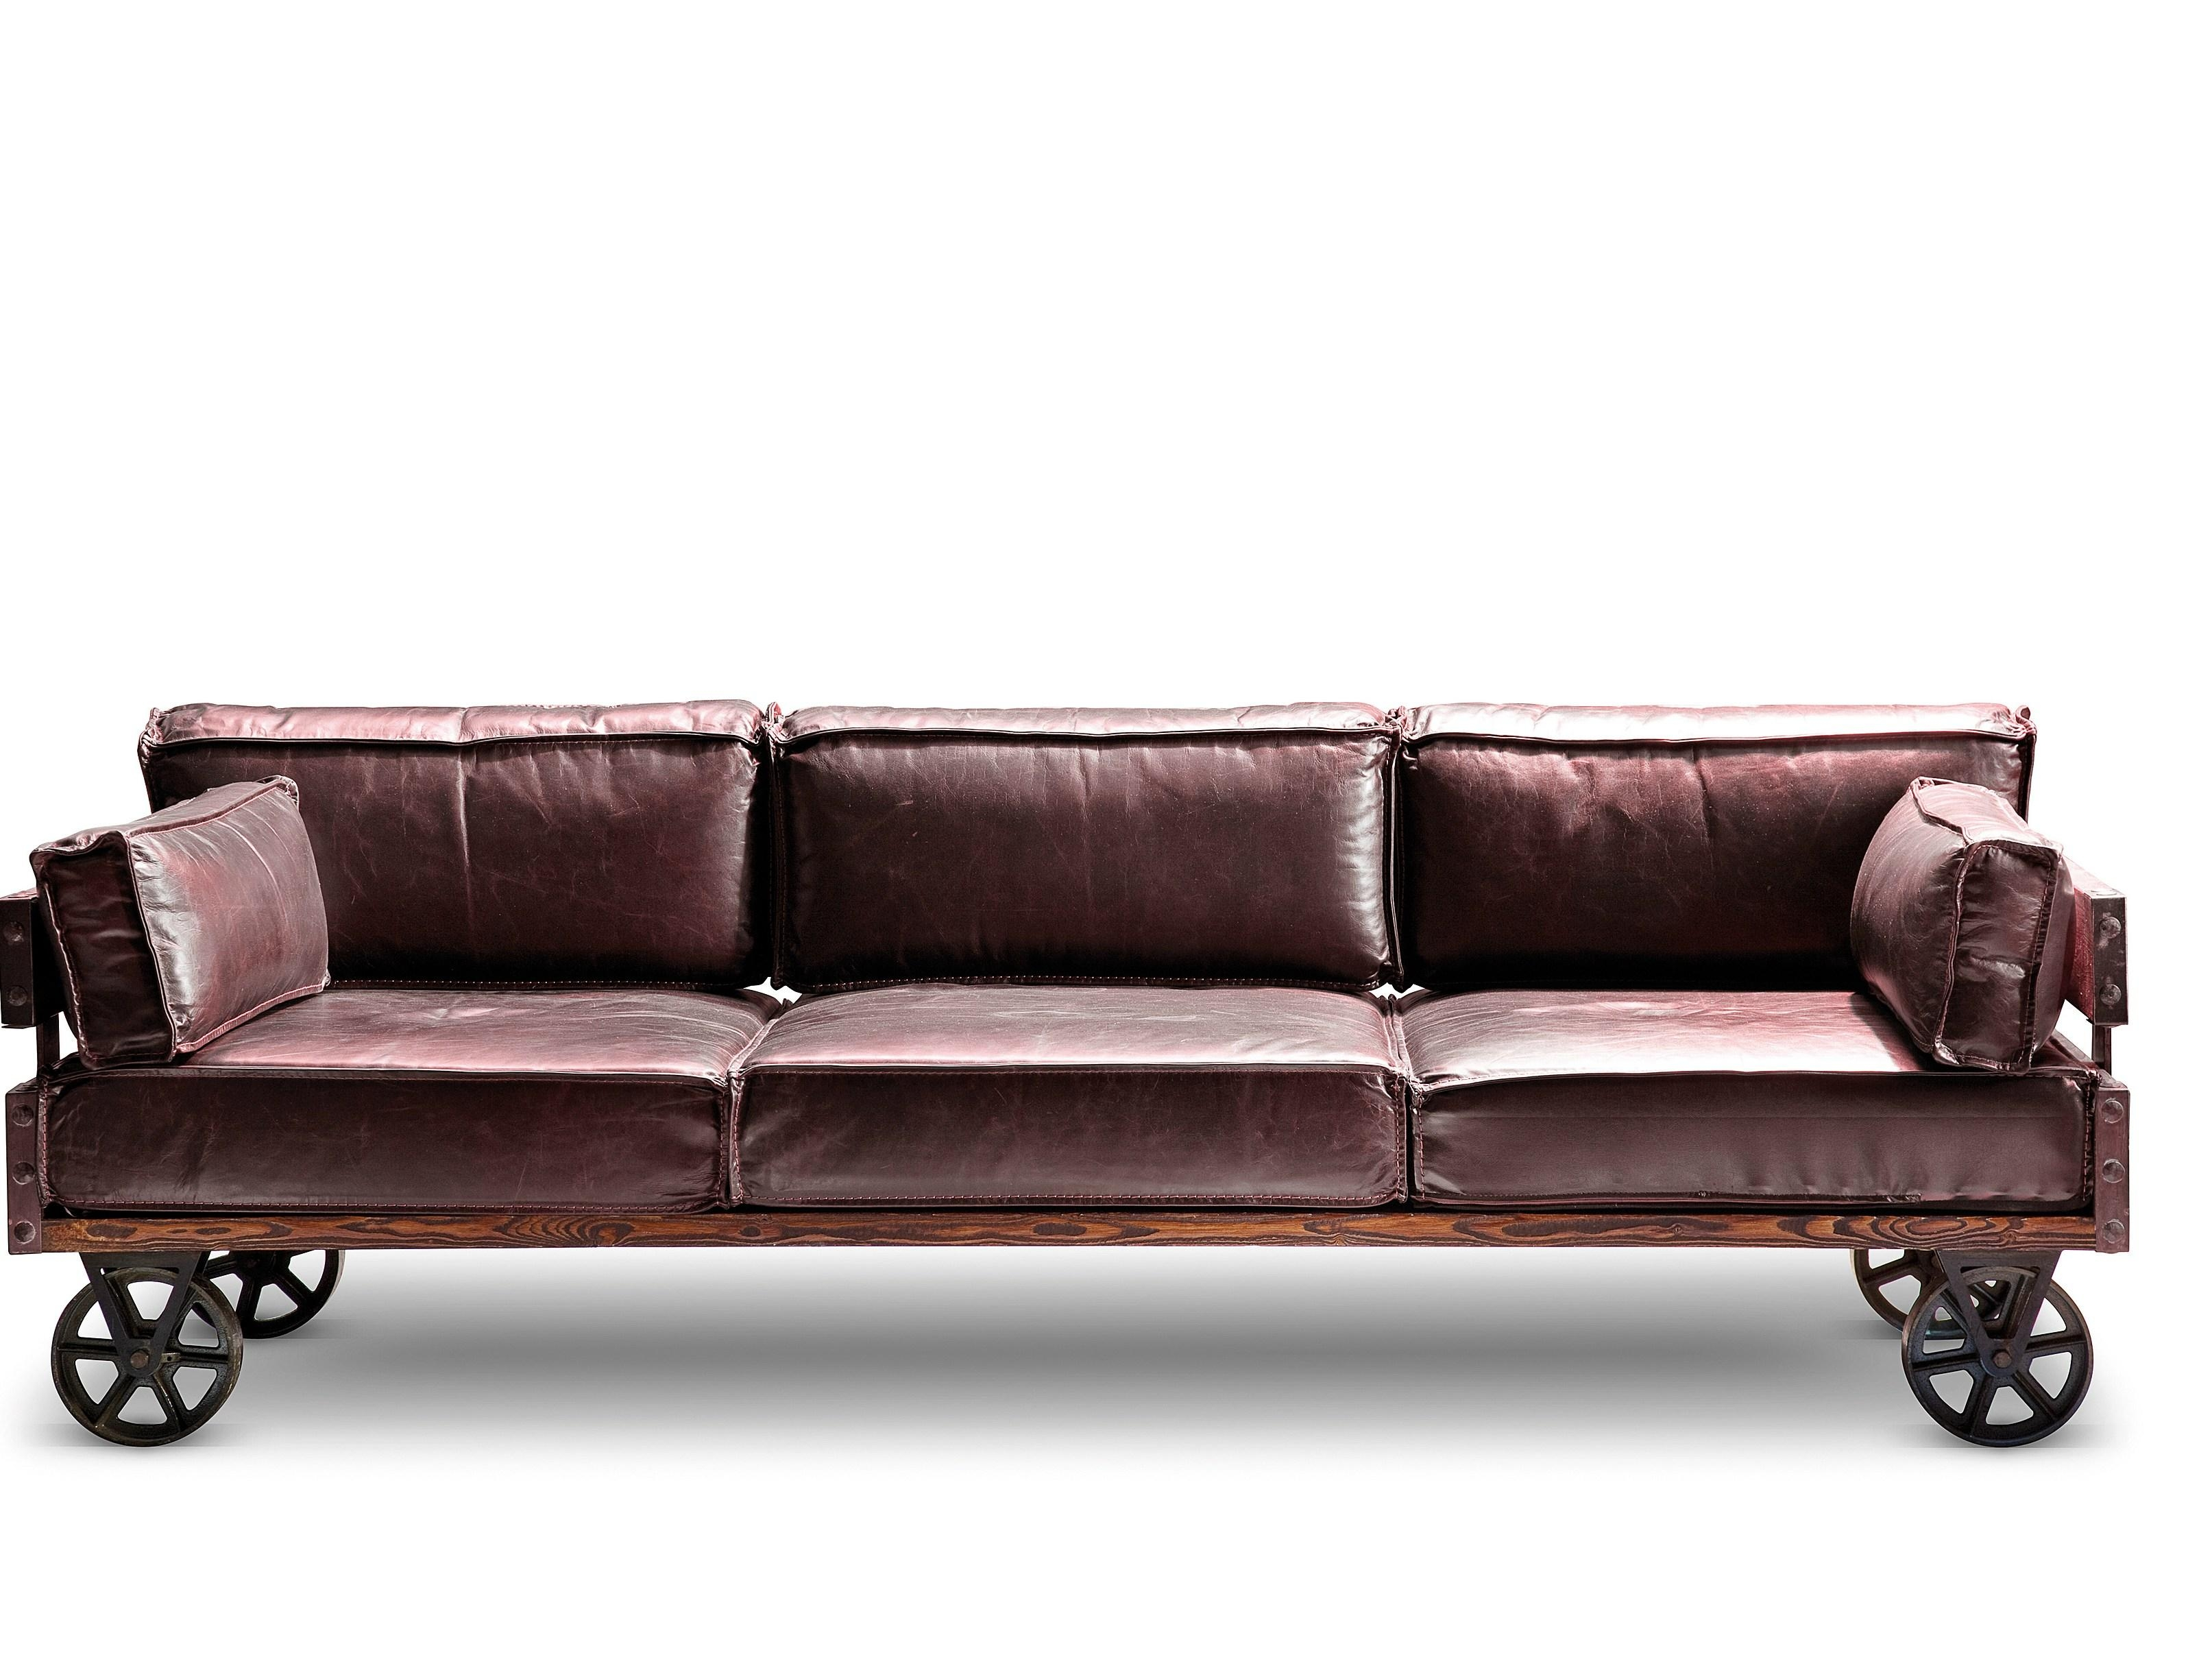 Sofa Casters With Inspiration Hd Gallery 33970 | Kengire With Regard To Casters Sofas (View 2 of 20)